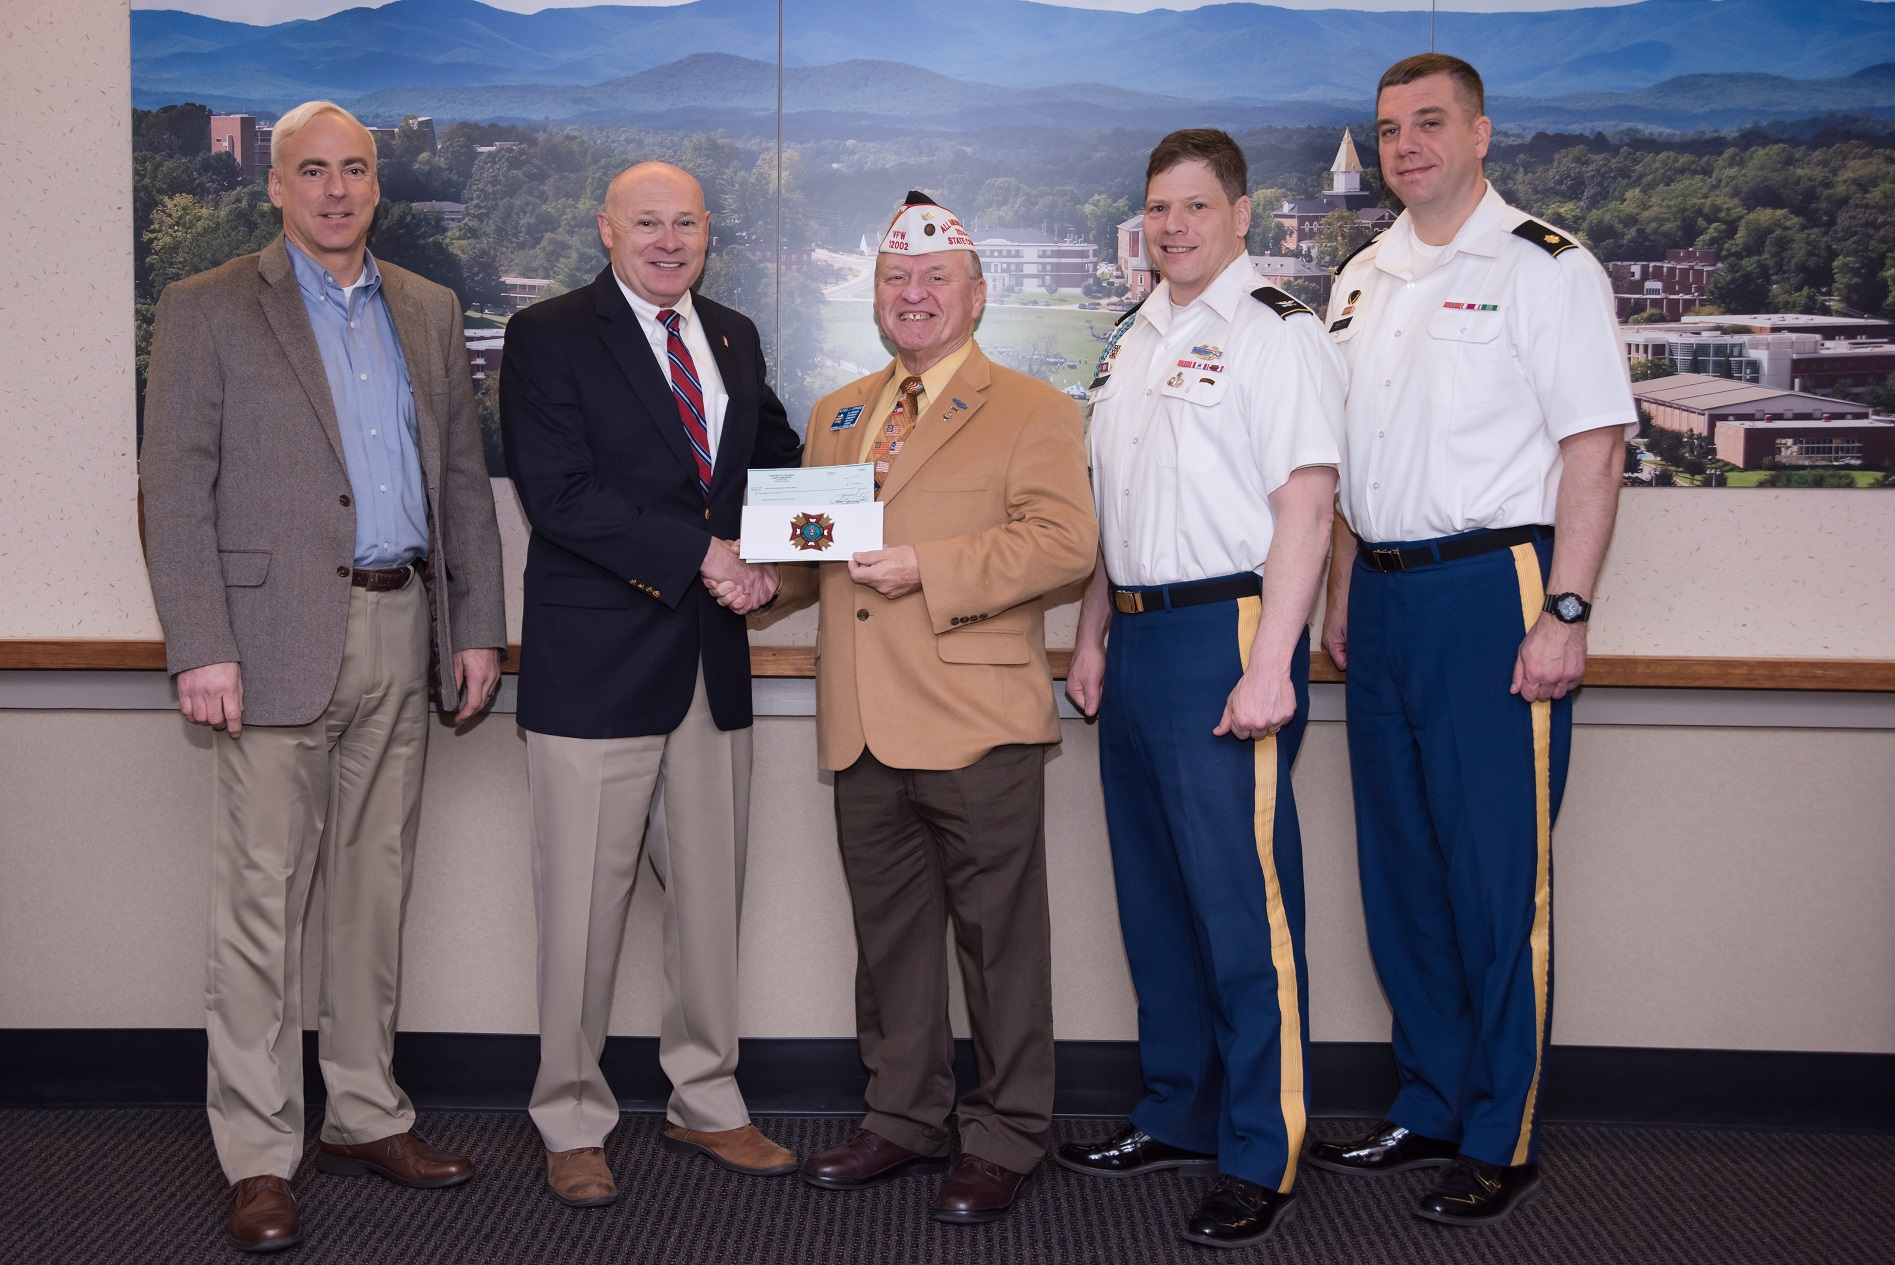 Al Lipphardt, former state commander of the VFW Department of Georgia, (center) presenting a $10,000 donation Feb. 3 to Dr. Billy Wells, senior vice president for leadership and global engagement at the University of North Georgia and chairman of the GWWICC (second from left). Also pictured are (left to right) Keith Antonia, associate vice president for military programs at UNG; Army Col. Gery Cummings, professor of military science; and Army Maj. Steven Devitt, executive officer of UNG's Department of Military Science.